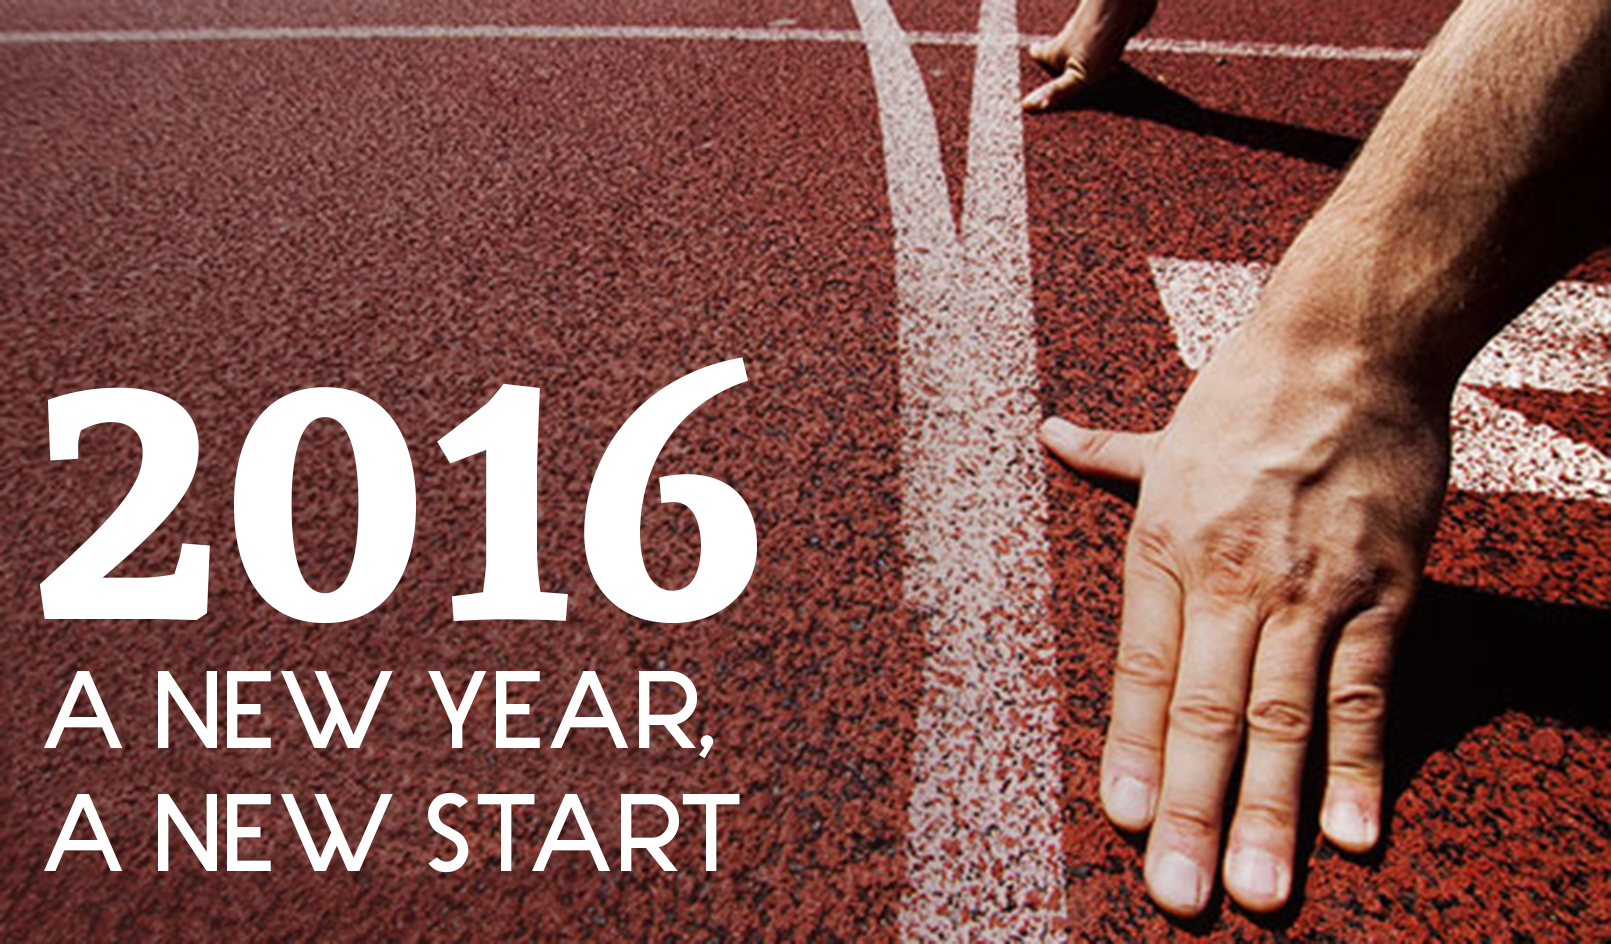 Be on track for 2016!